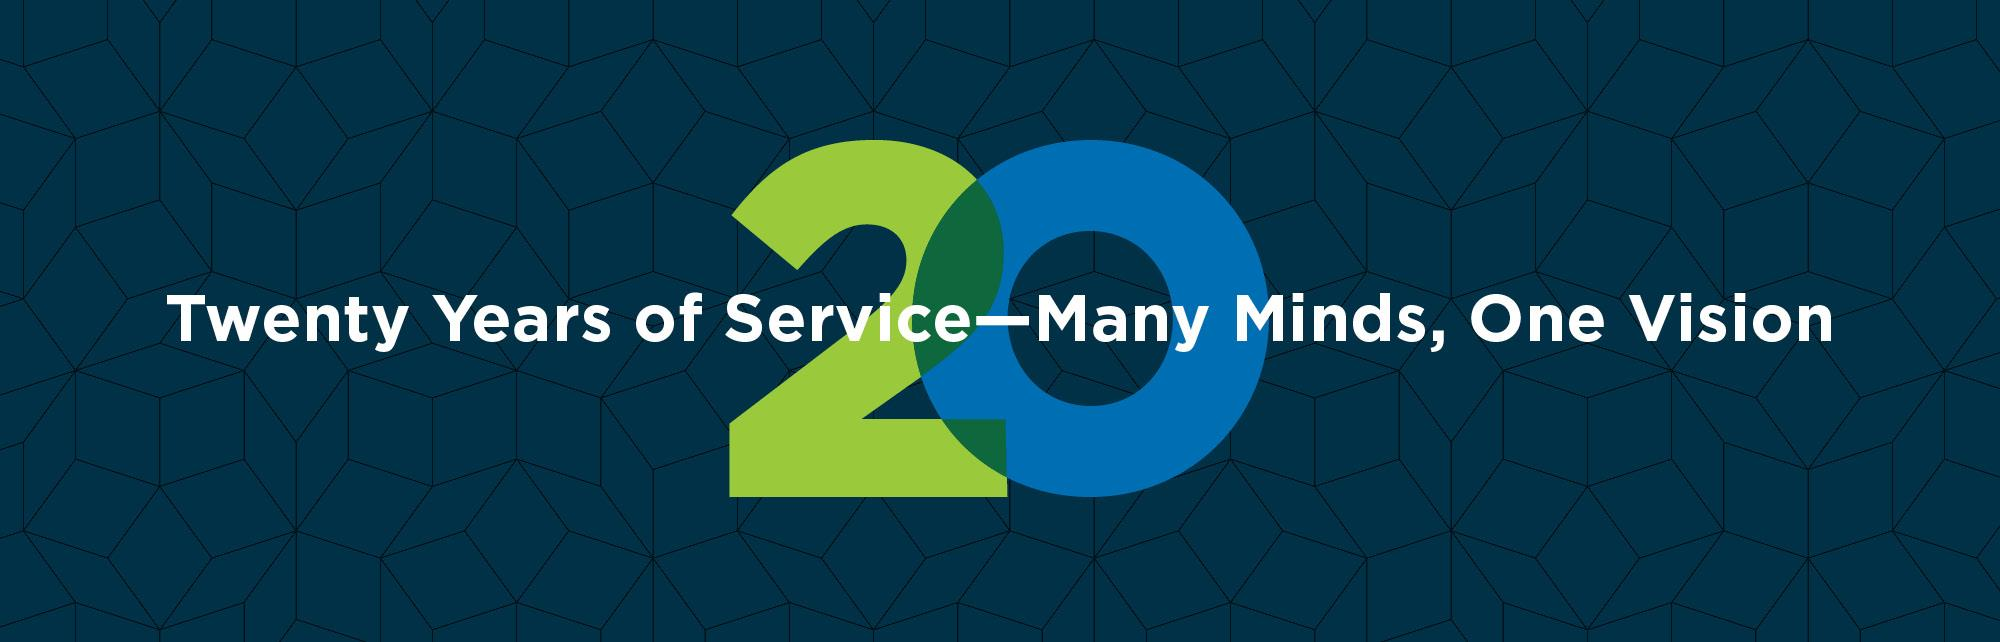 Twenty Years of Service - Many Minds, One Vision